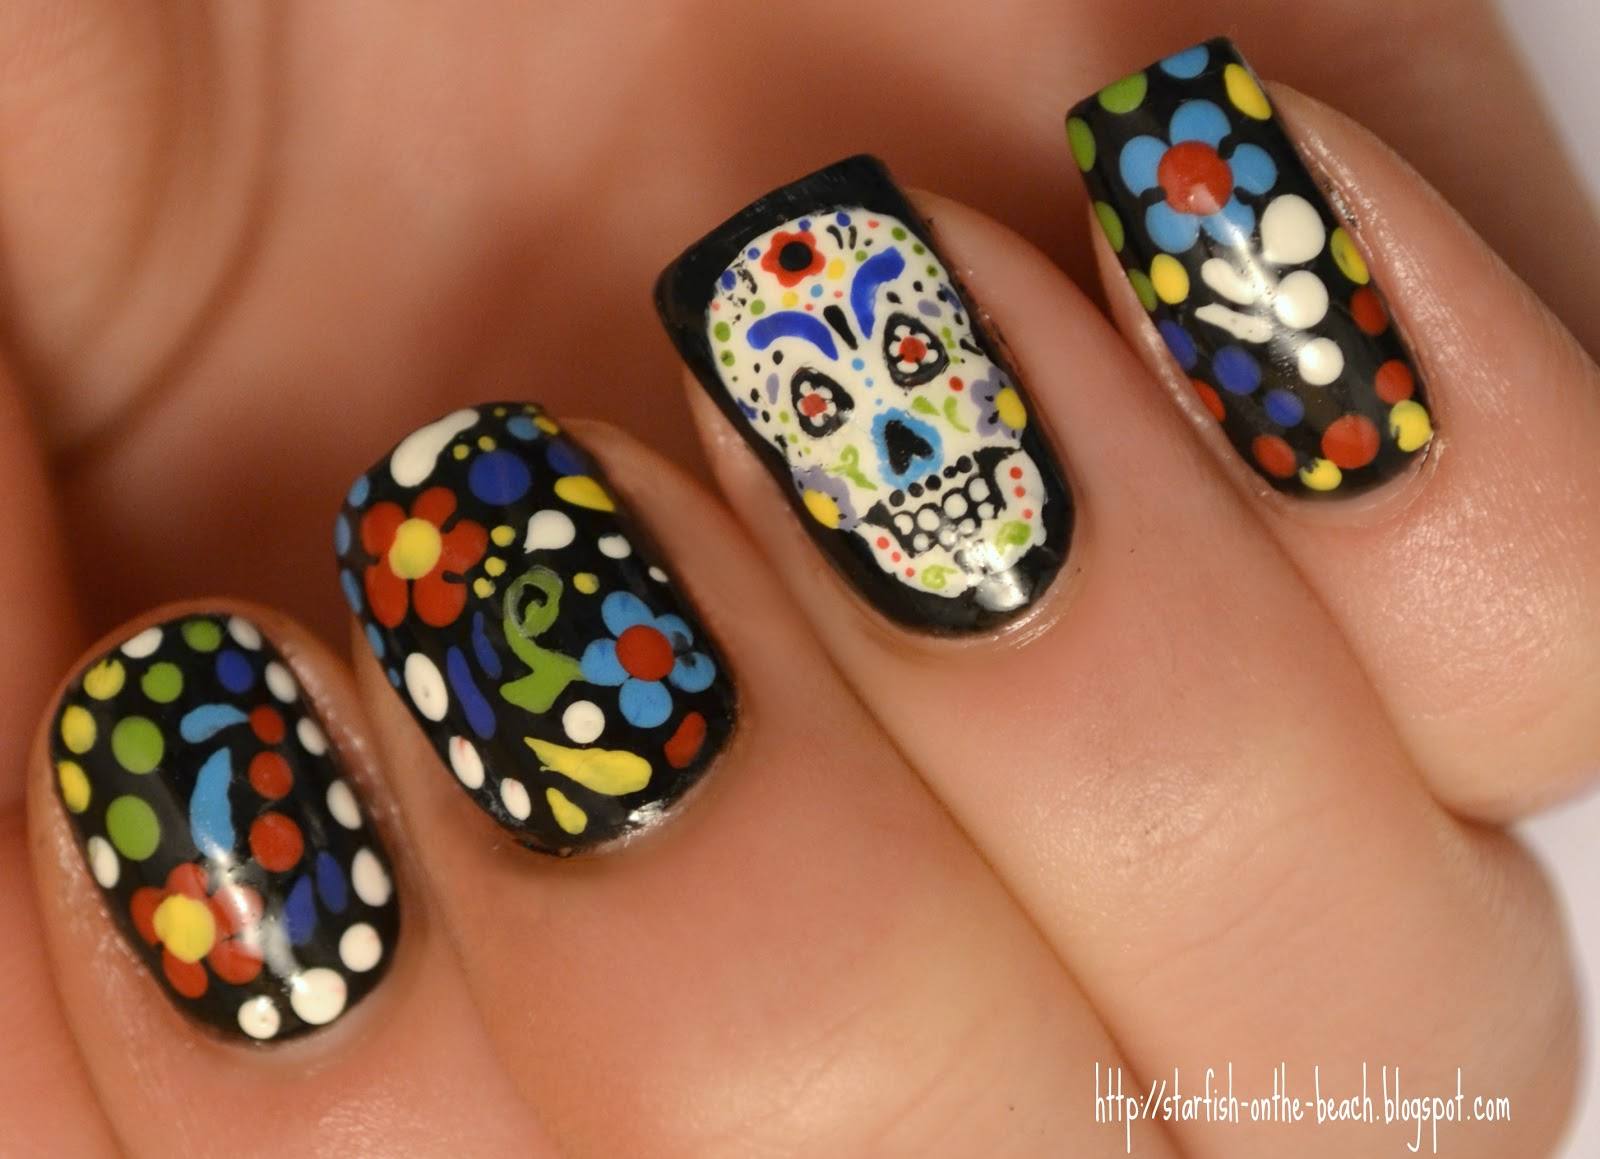 Starfish On The Beach Feliz D 237 A De Los Muertos And 31 Day Nail Art Challenge Day 26 Pattern